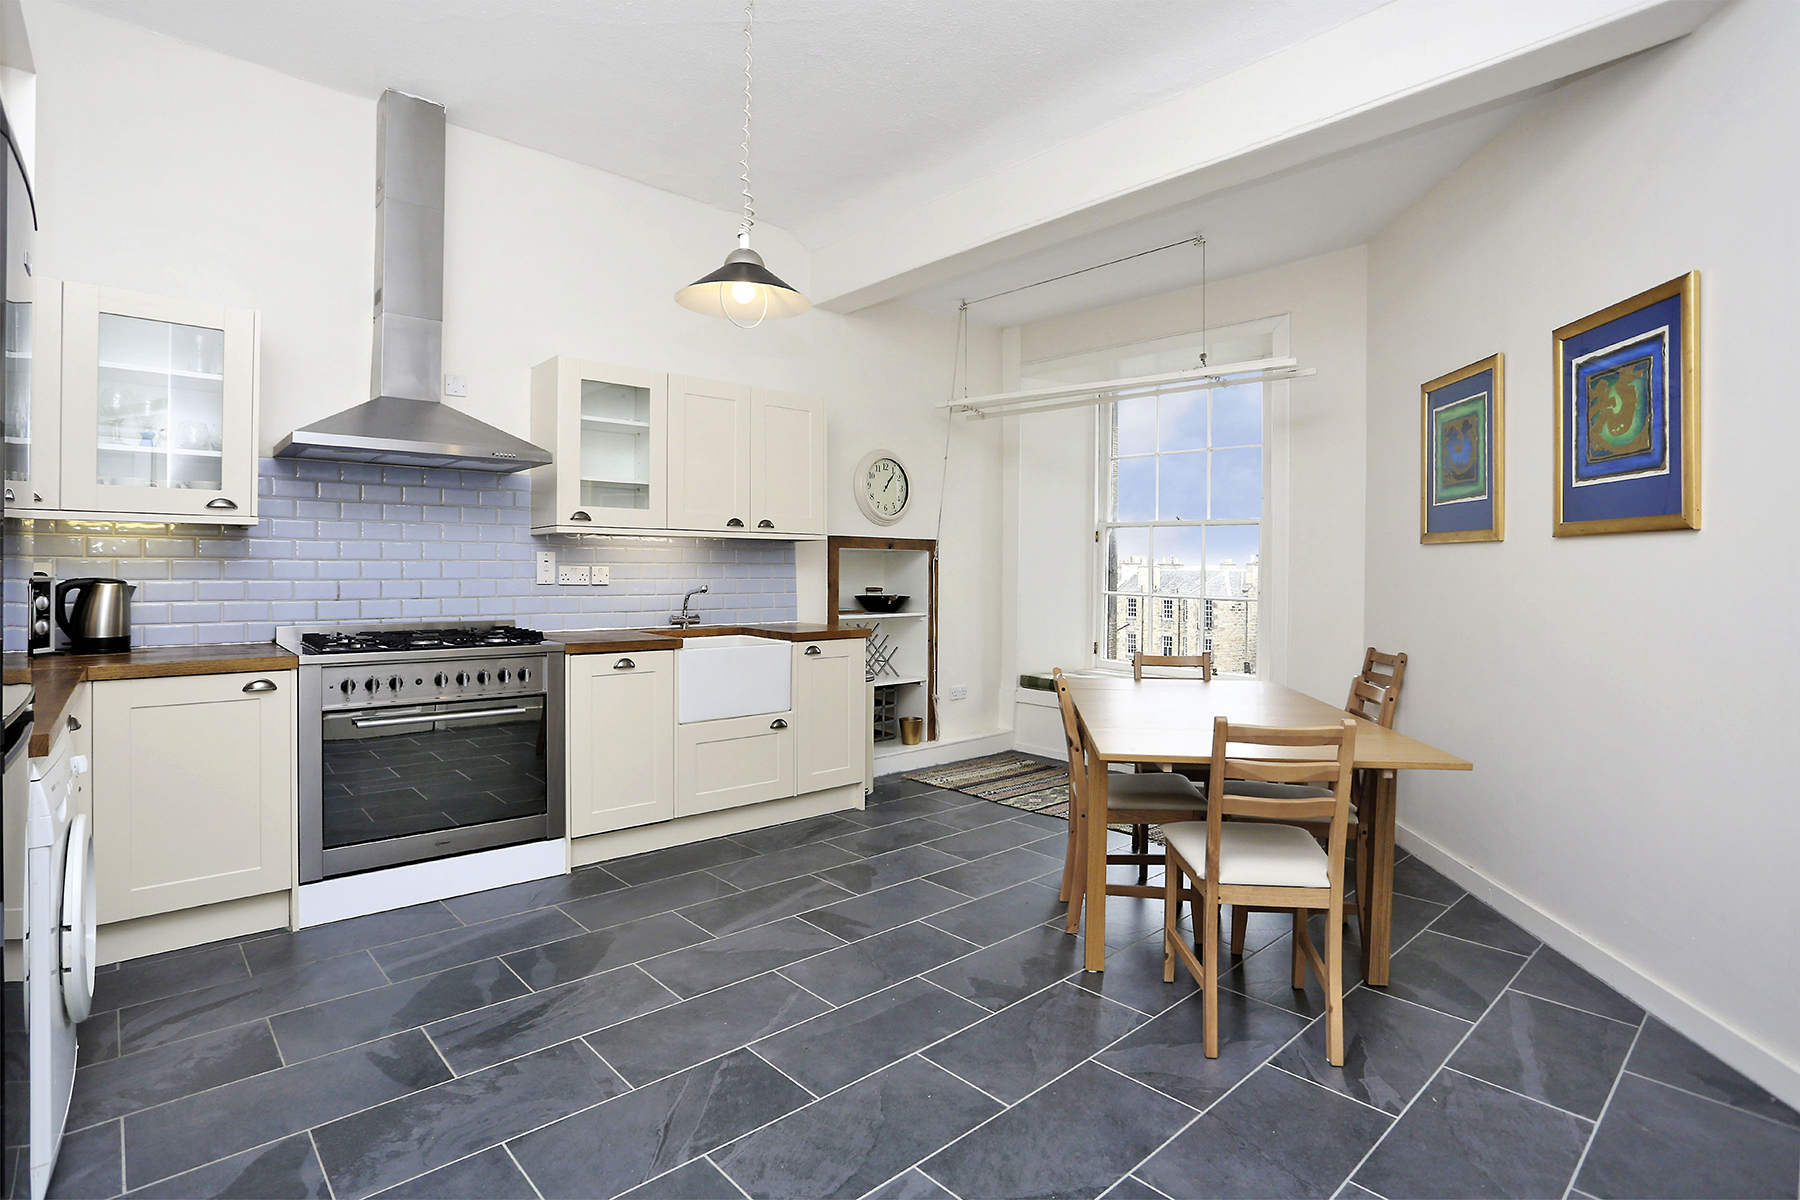 Kitchen at The New Town Apartment, Bonnington, Edinburgh - Citybase Apartments